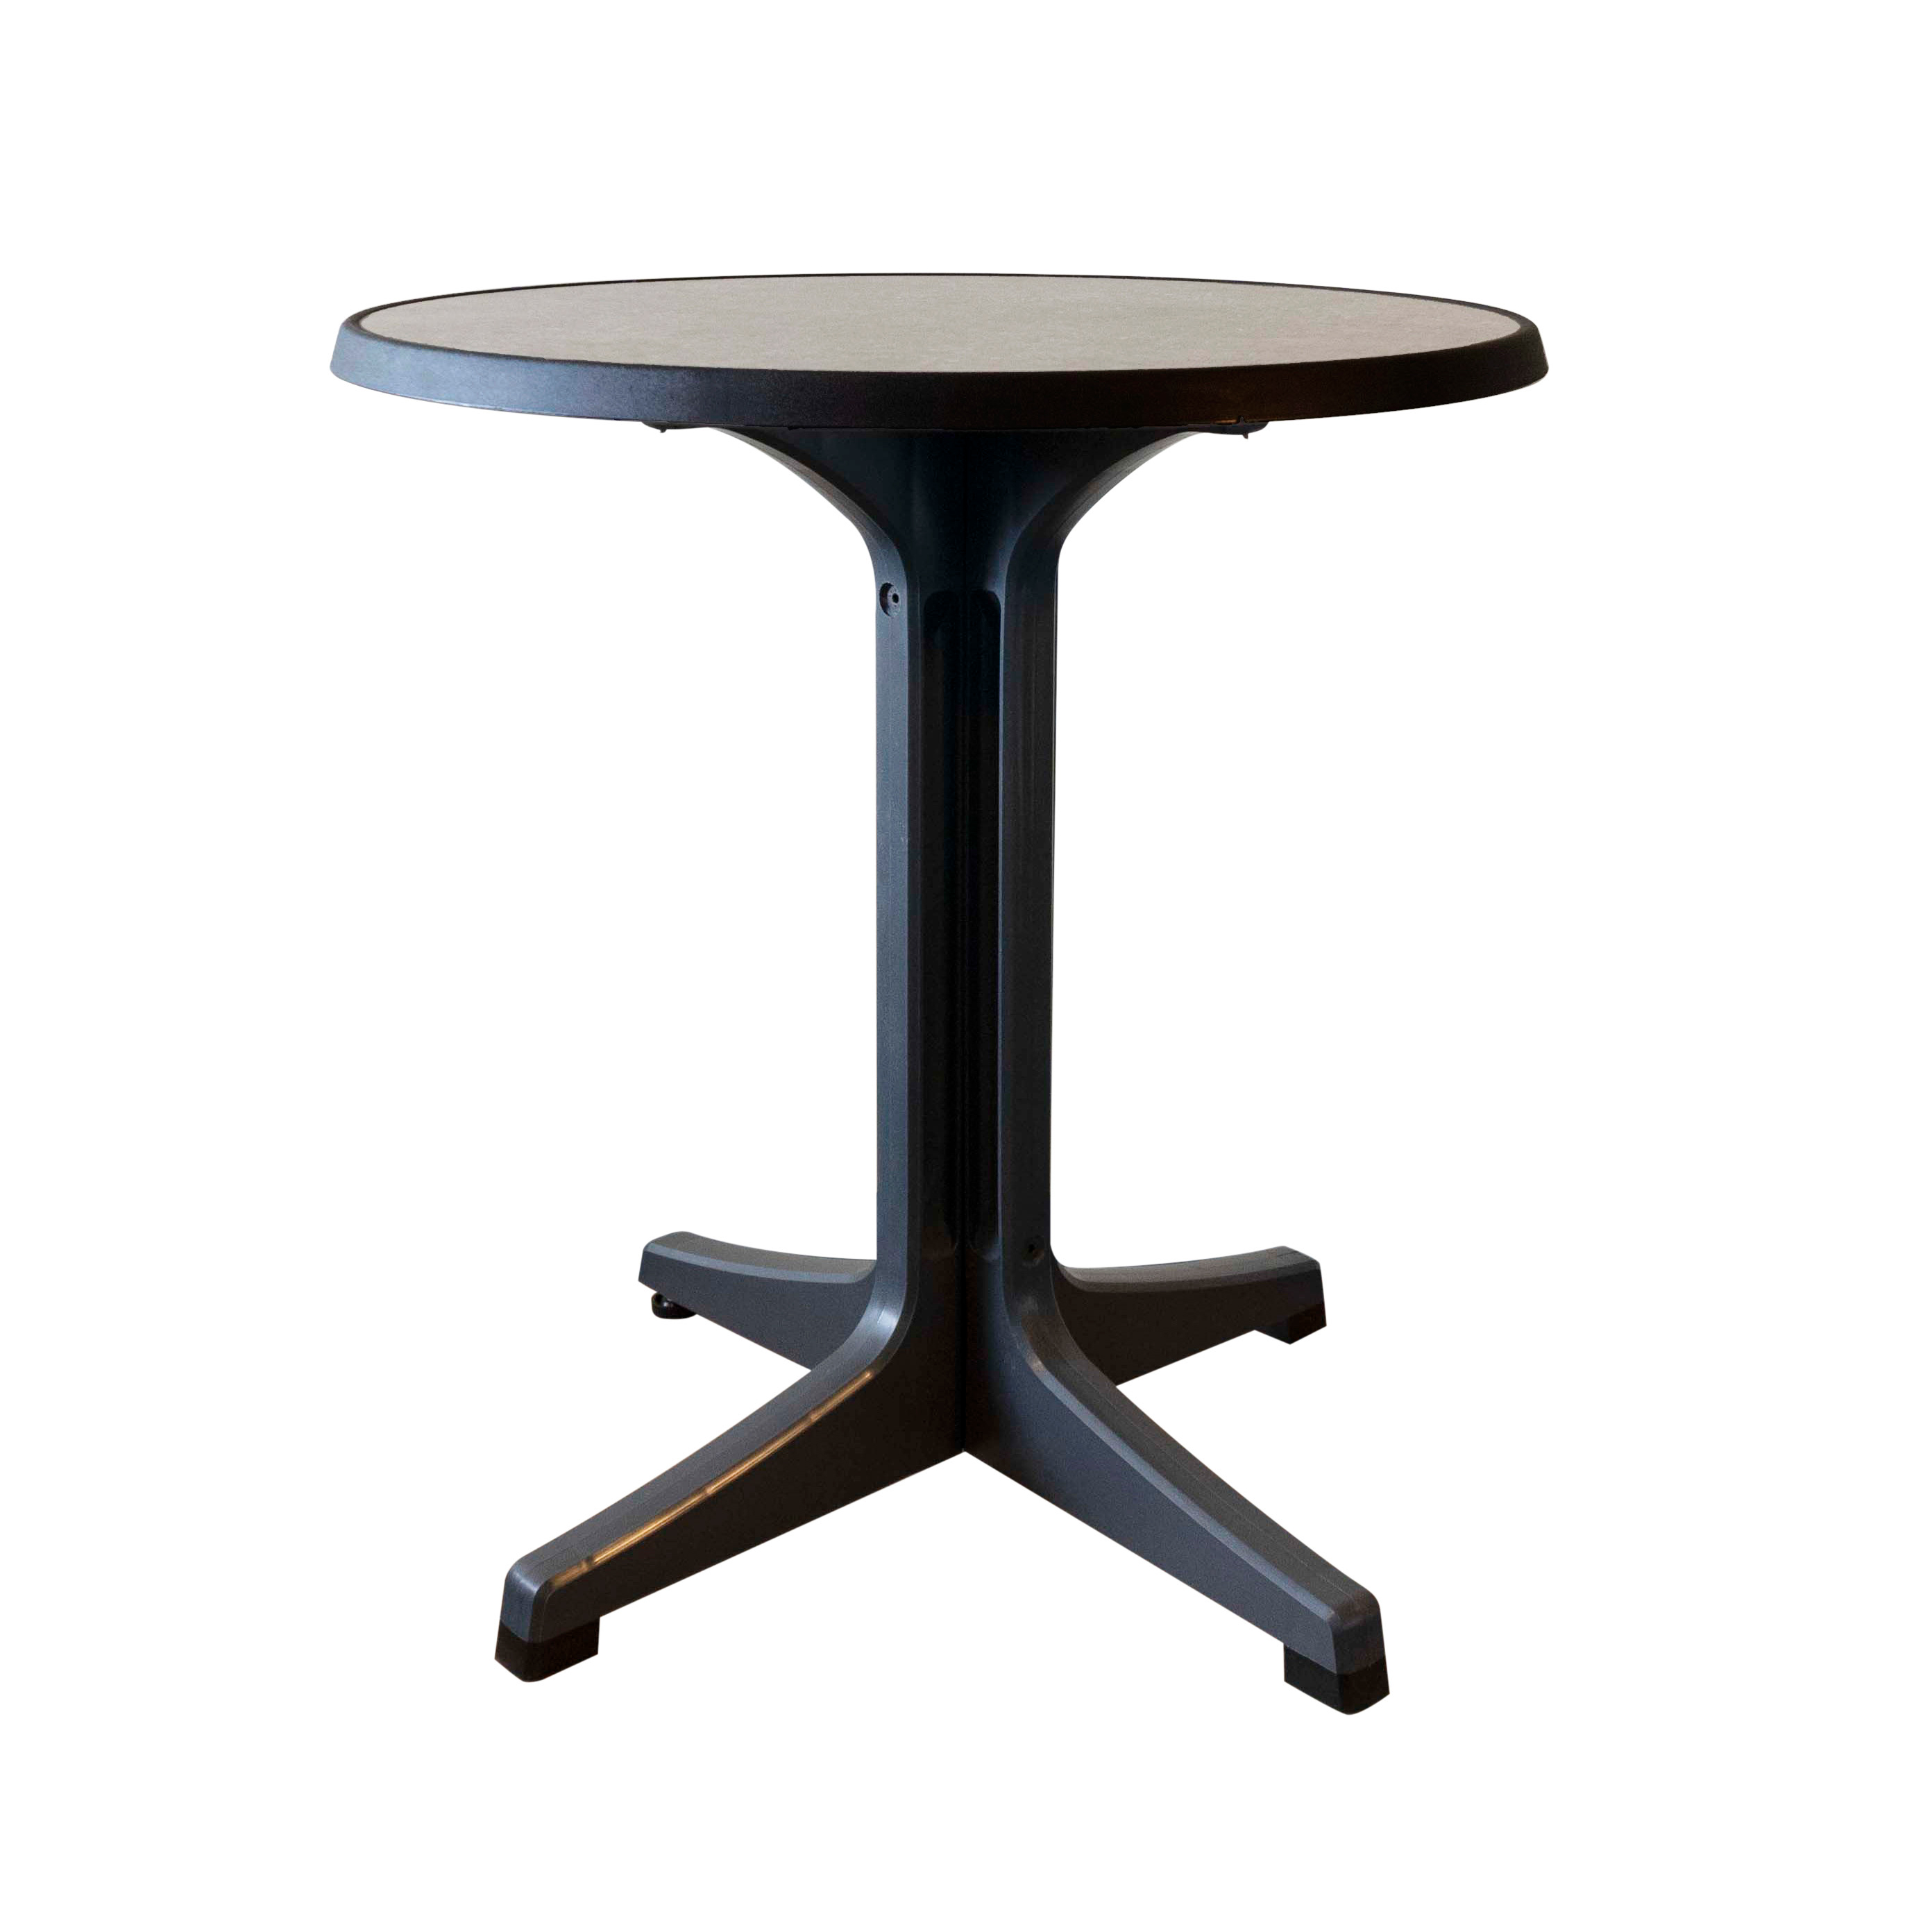 Grosfillex US288746 table, outdoor